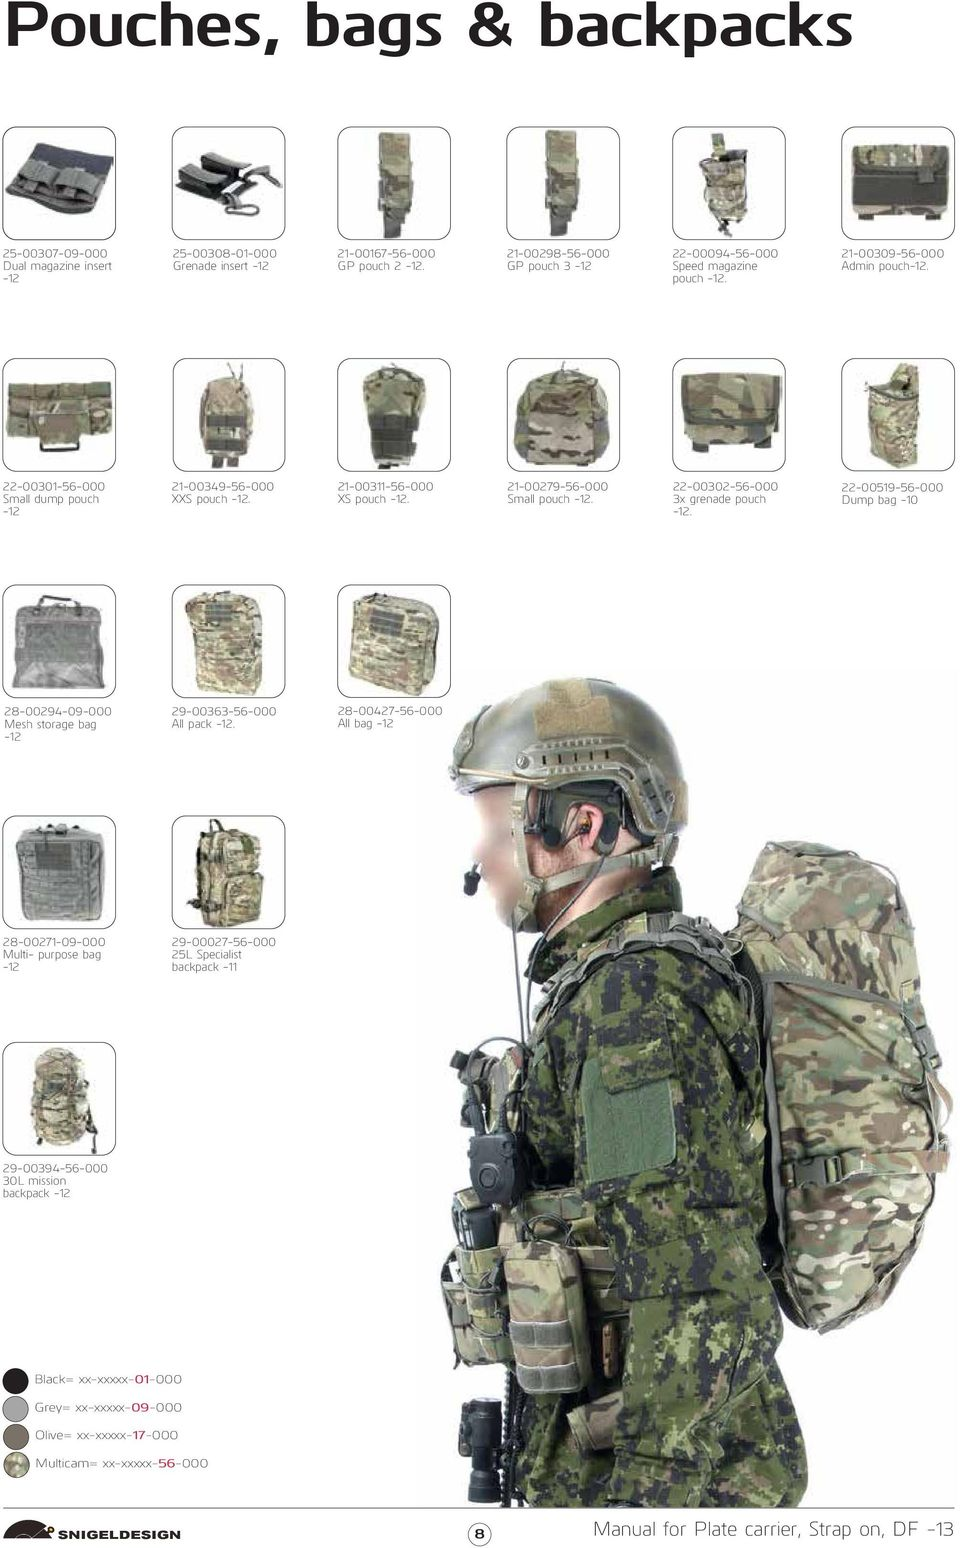 21-00279-56-000 Small pouch. 22-00302-56-000 3x grenade pouch. 22-00519-56-000 Dump bag -10 28-00294-09-000 Mesh storage bag 29-00363-56-000 All pack.